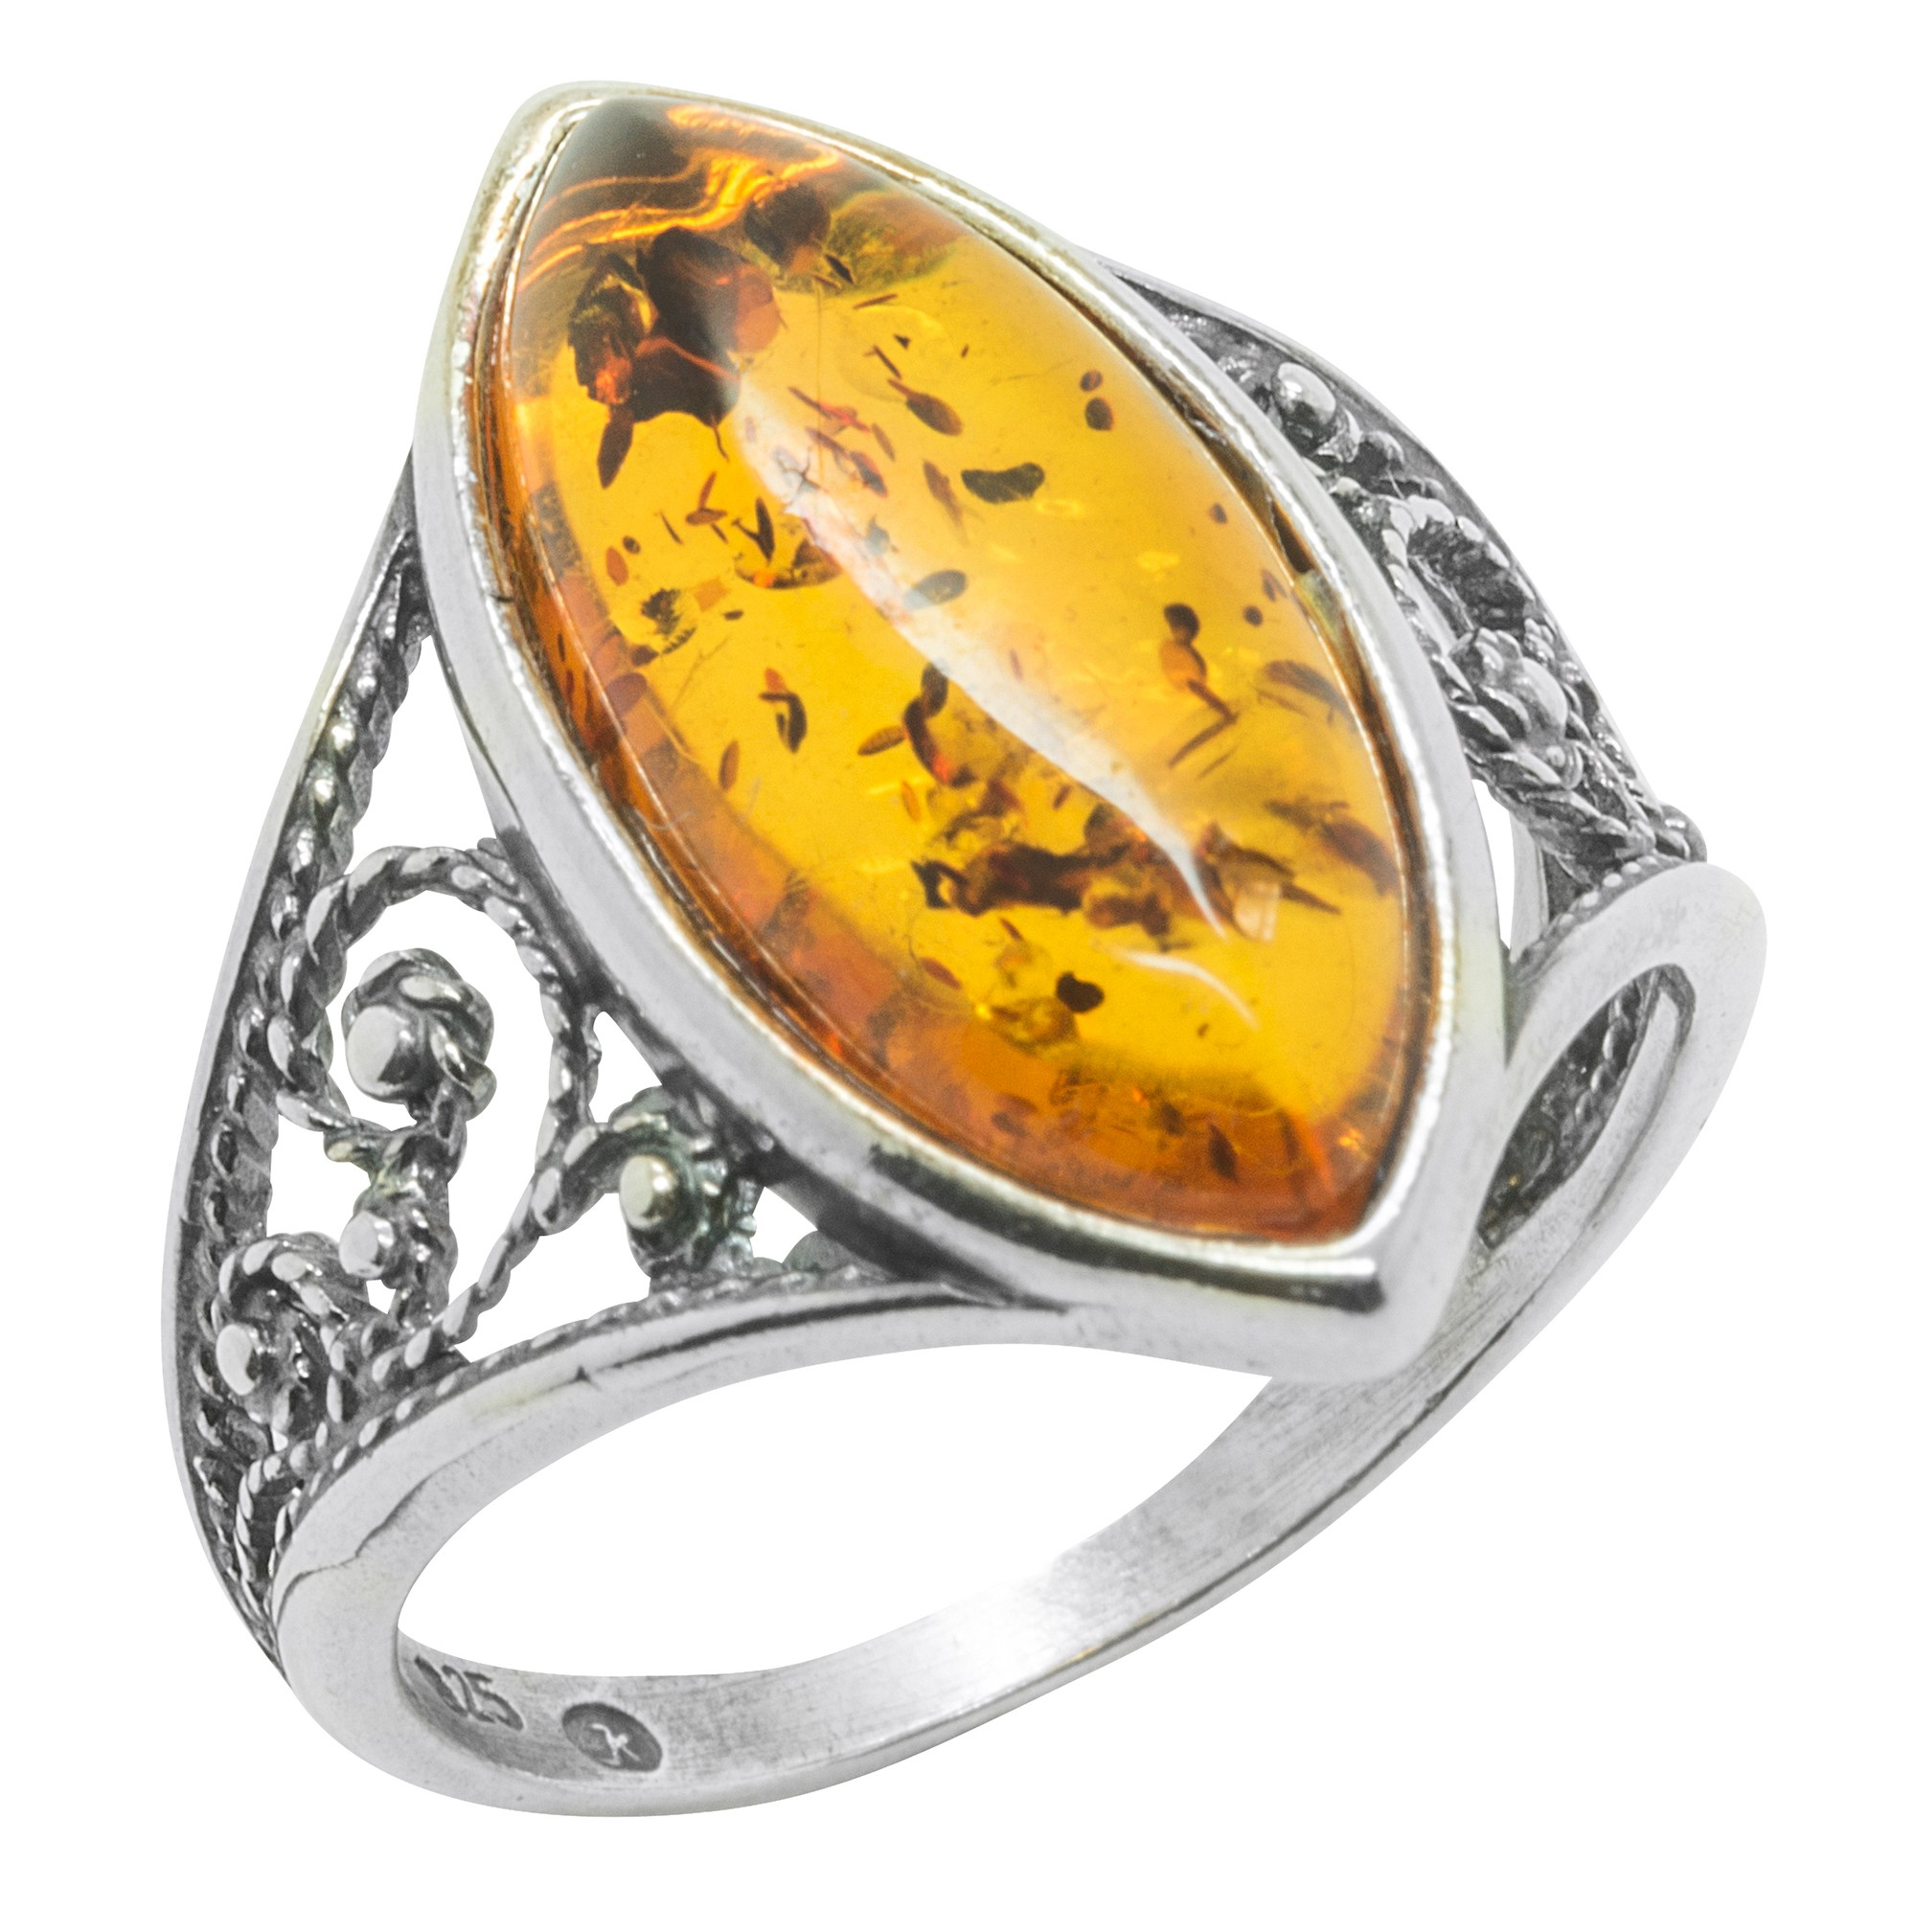 monaco rings ring jolie amber jewelry products engagement